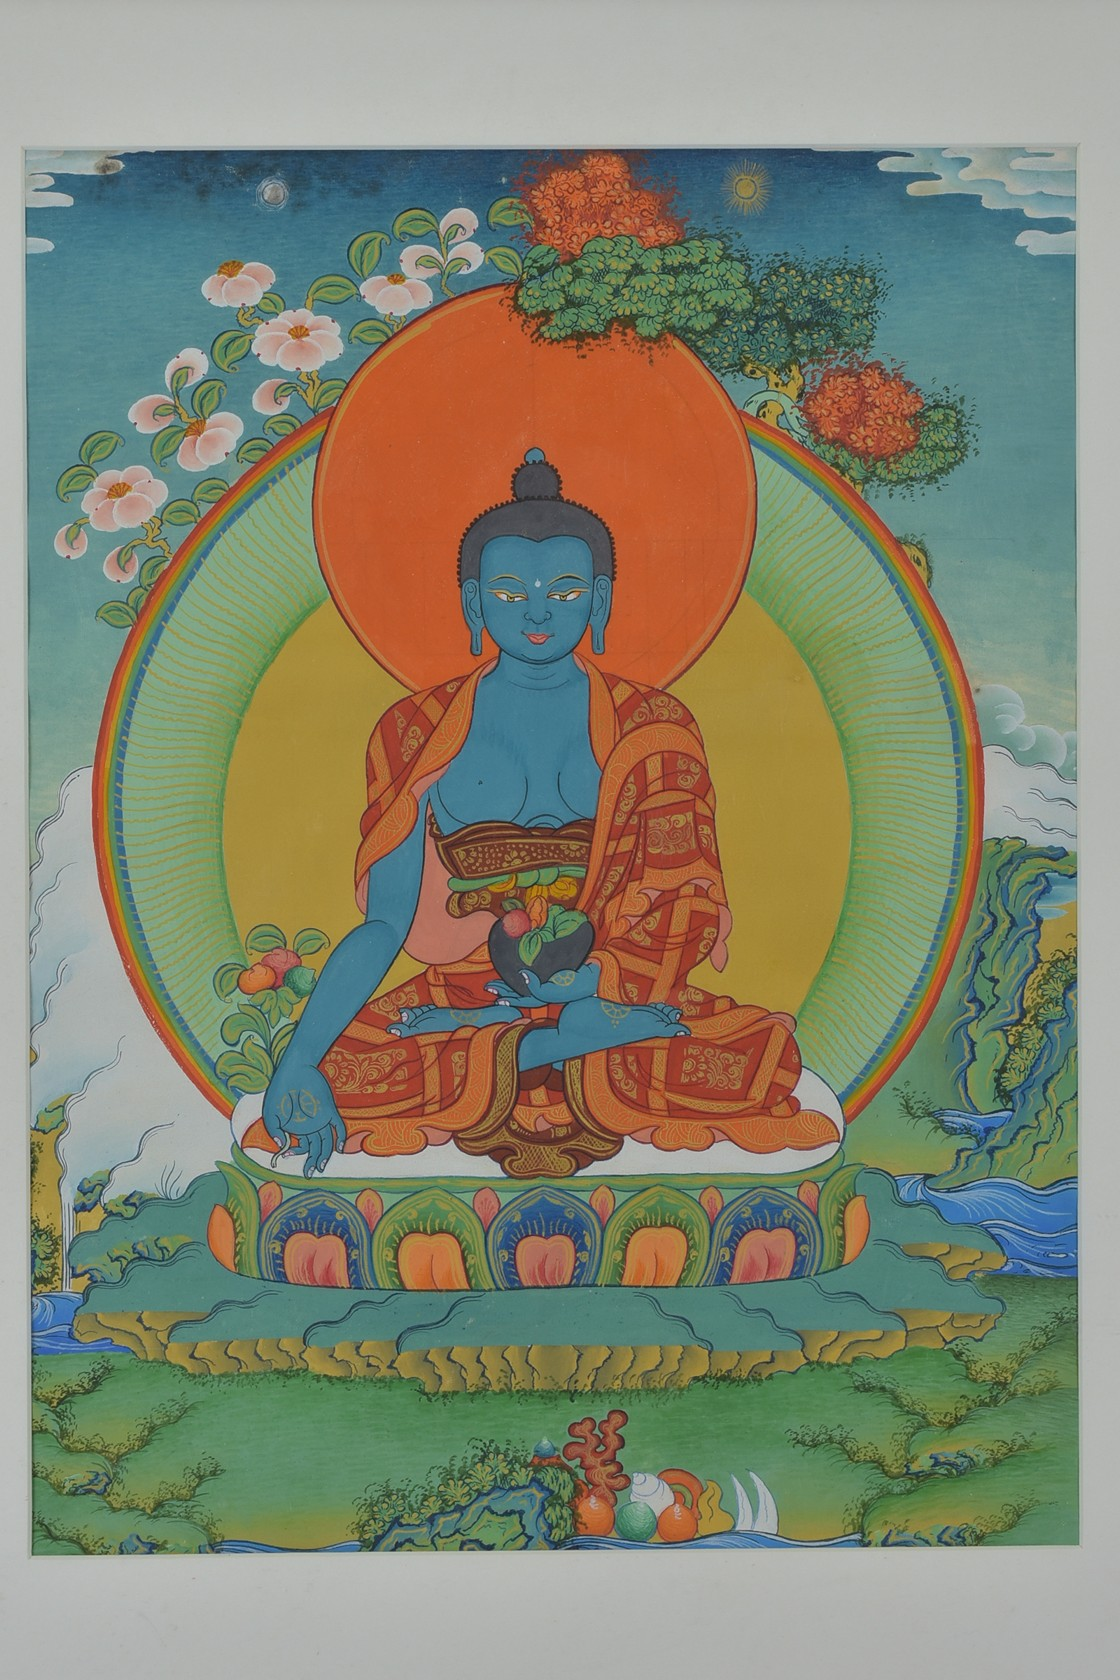 Lot 48 - A traditional style Buddhist Thangka painting of Buddha Gautama sitting in a lotus pose holding a bo